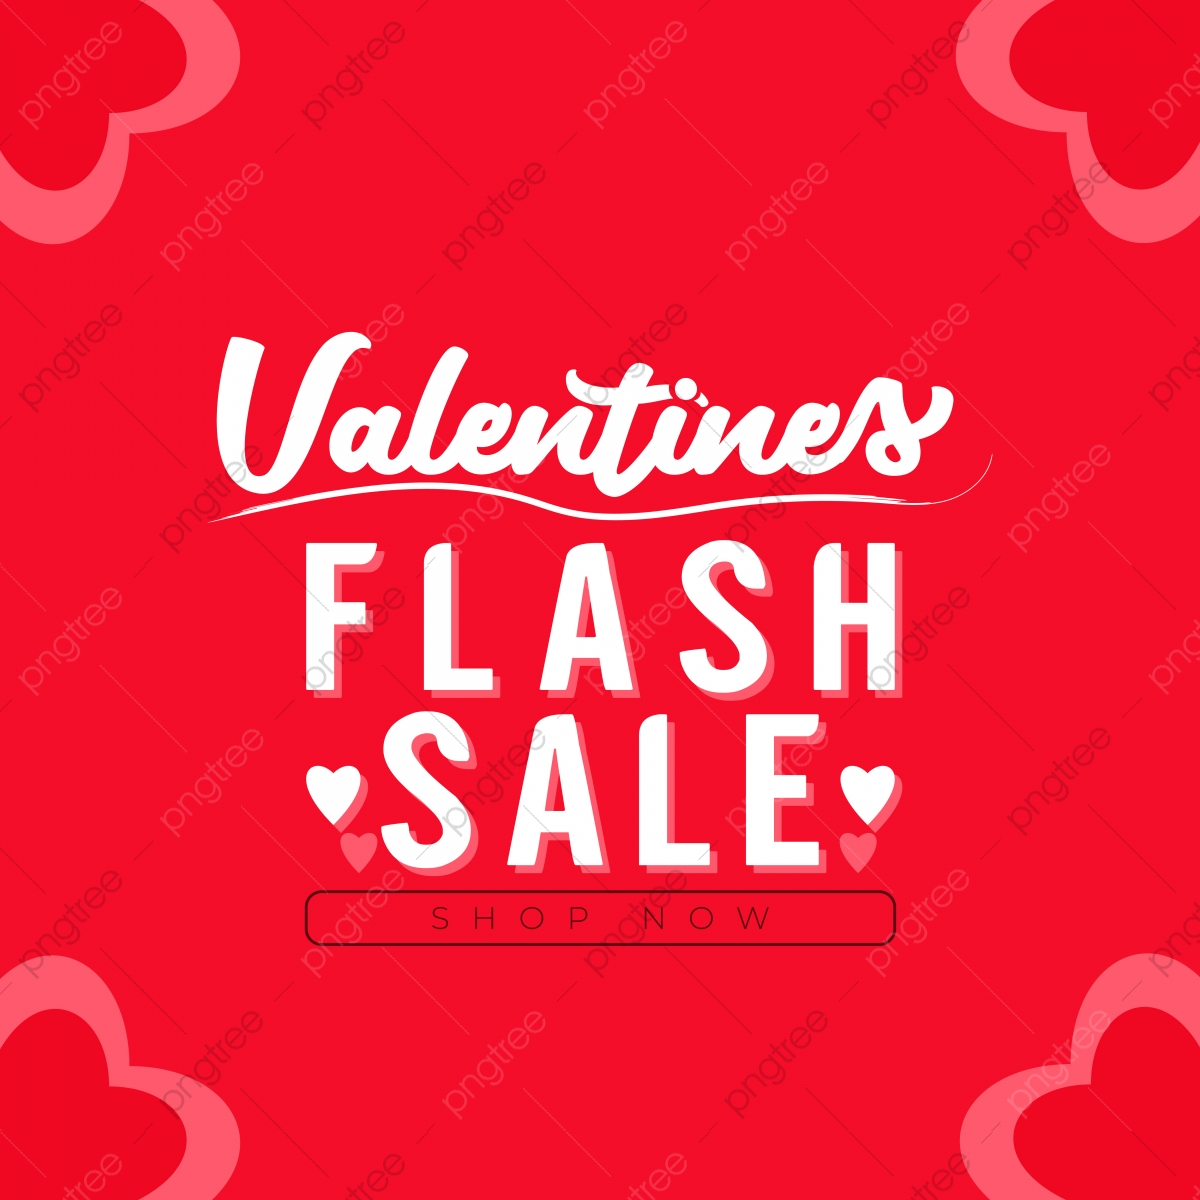 pngtree valentines day typography flash sale banner design hearts background png image